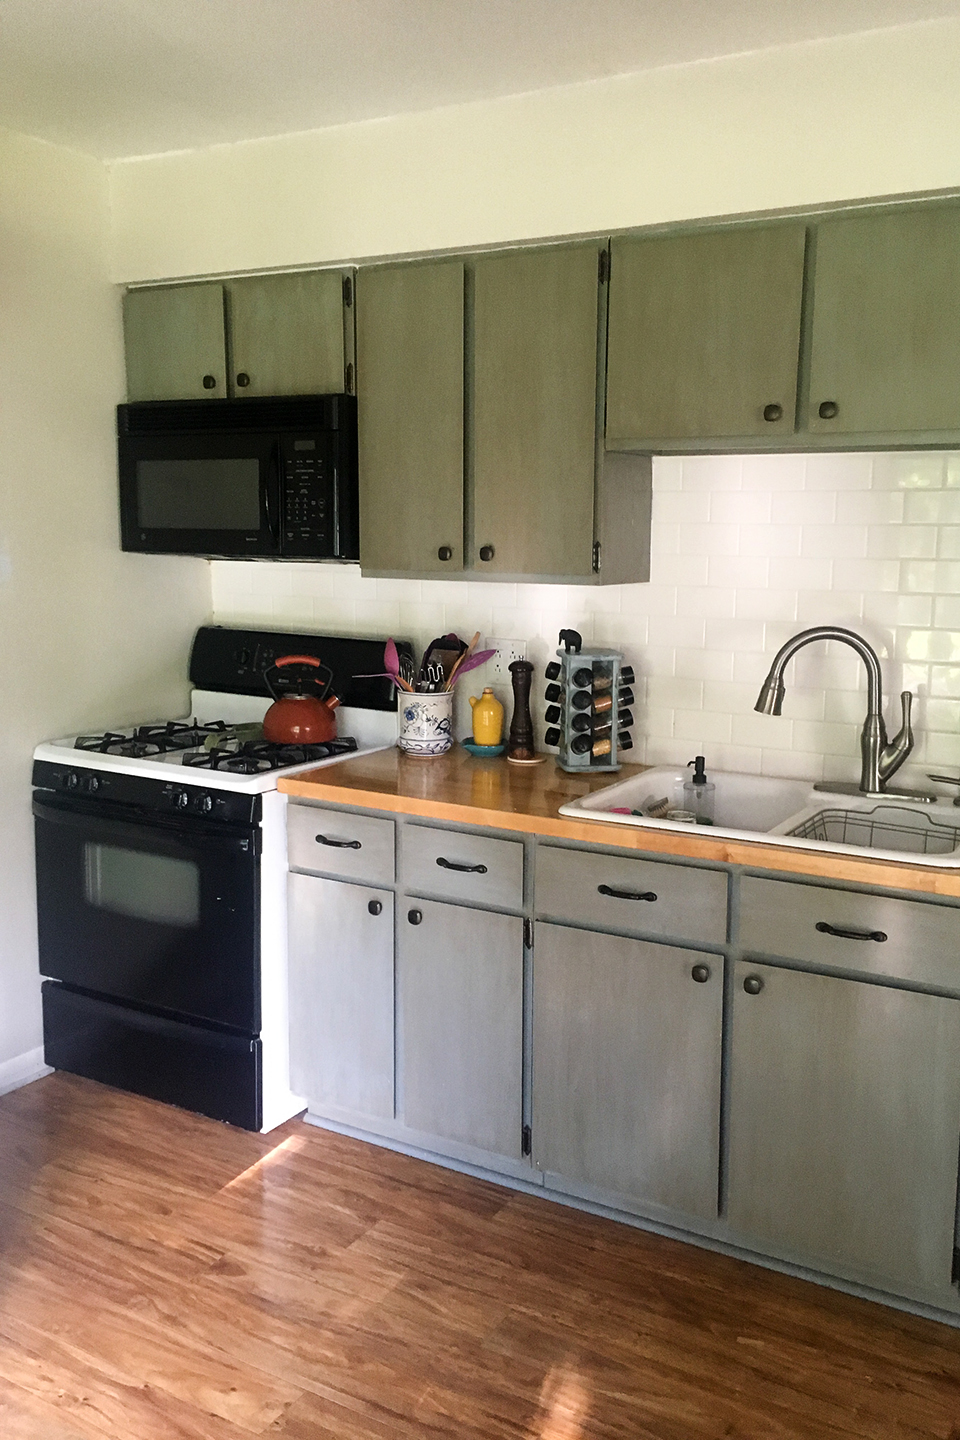 Kitchen Remodel On A Budget 5 Low Cost Ideas To Help You